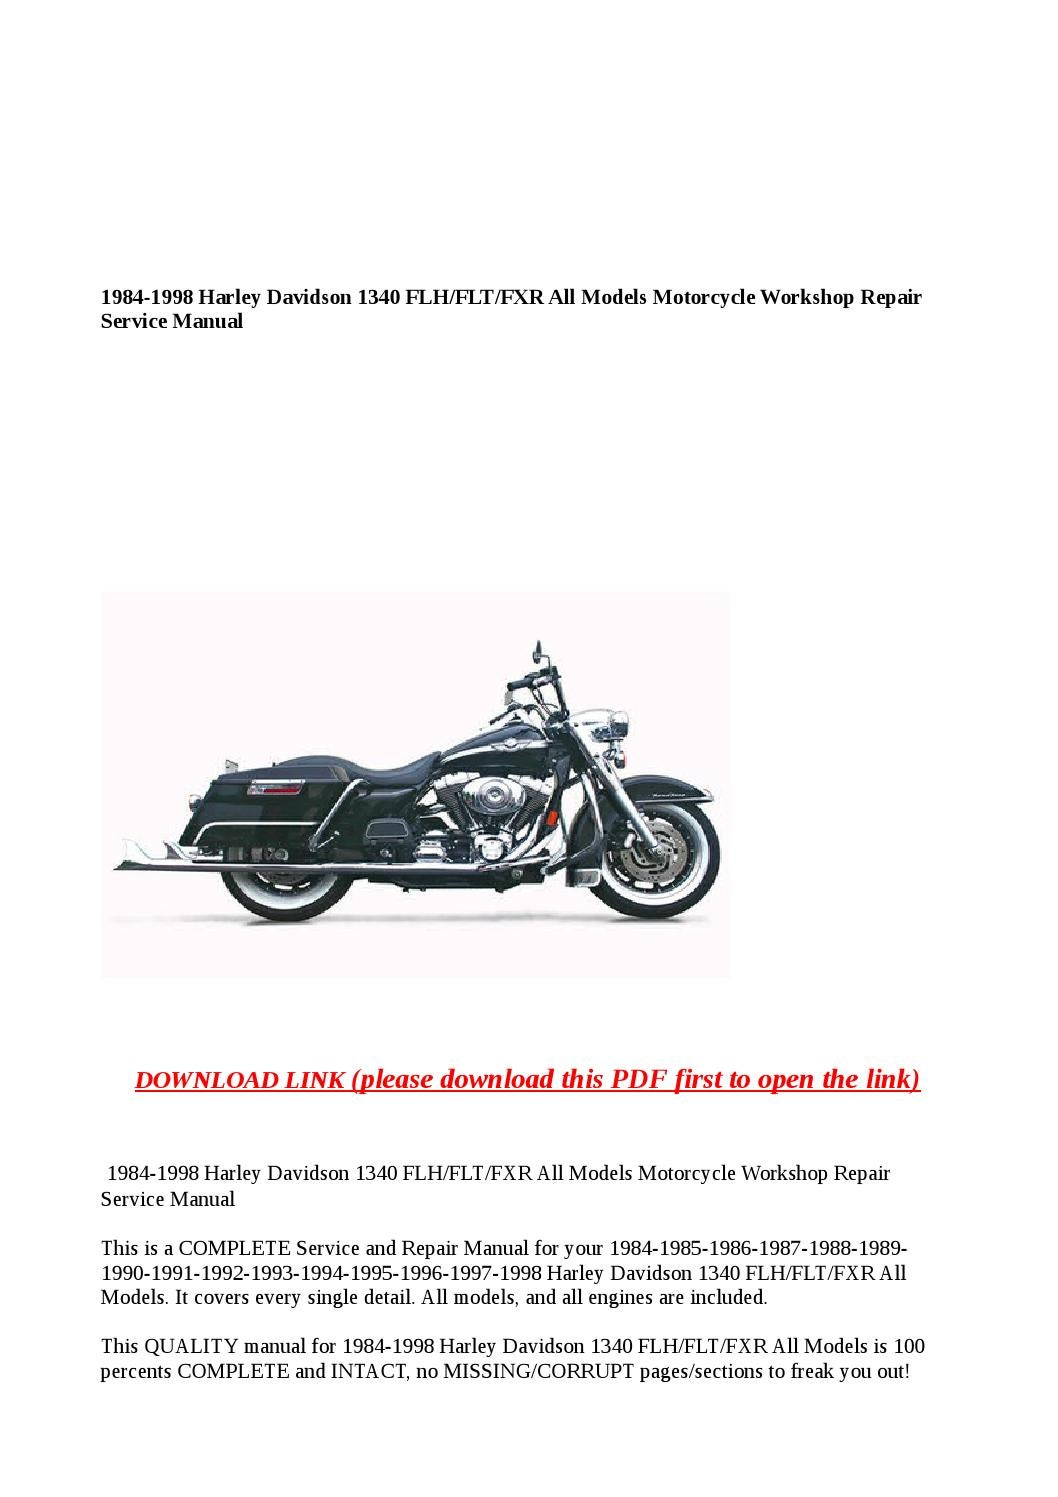 [SCHEMATICS_48EU]  2707D7 1992 Harley Davidson Ultra Glide Wiring Diagram | Wiring Resources | 1992 Harley Davidson Ultra Glide Wiring Diagram |  | Wiring Resources